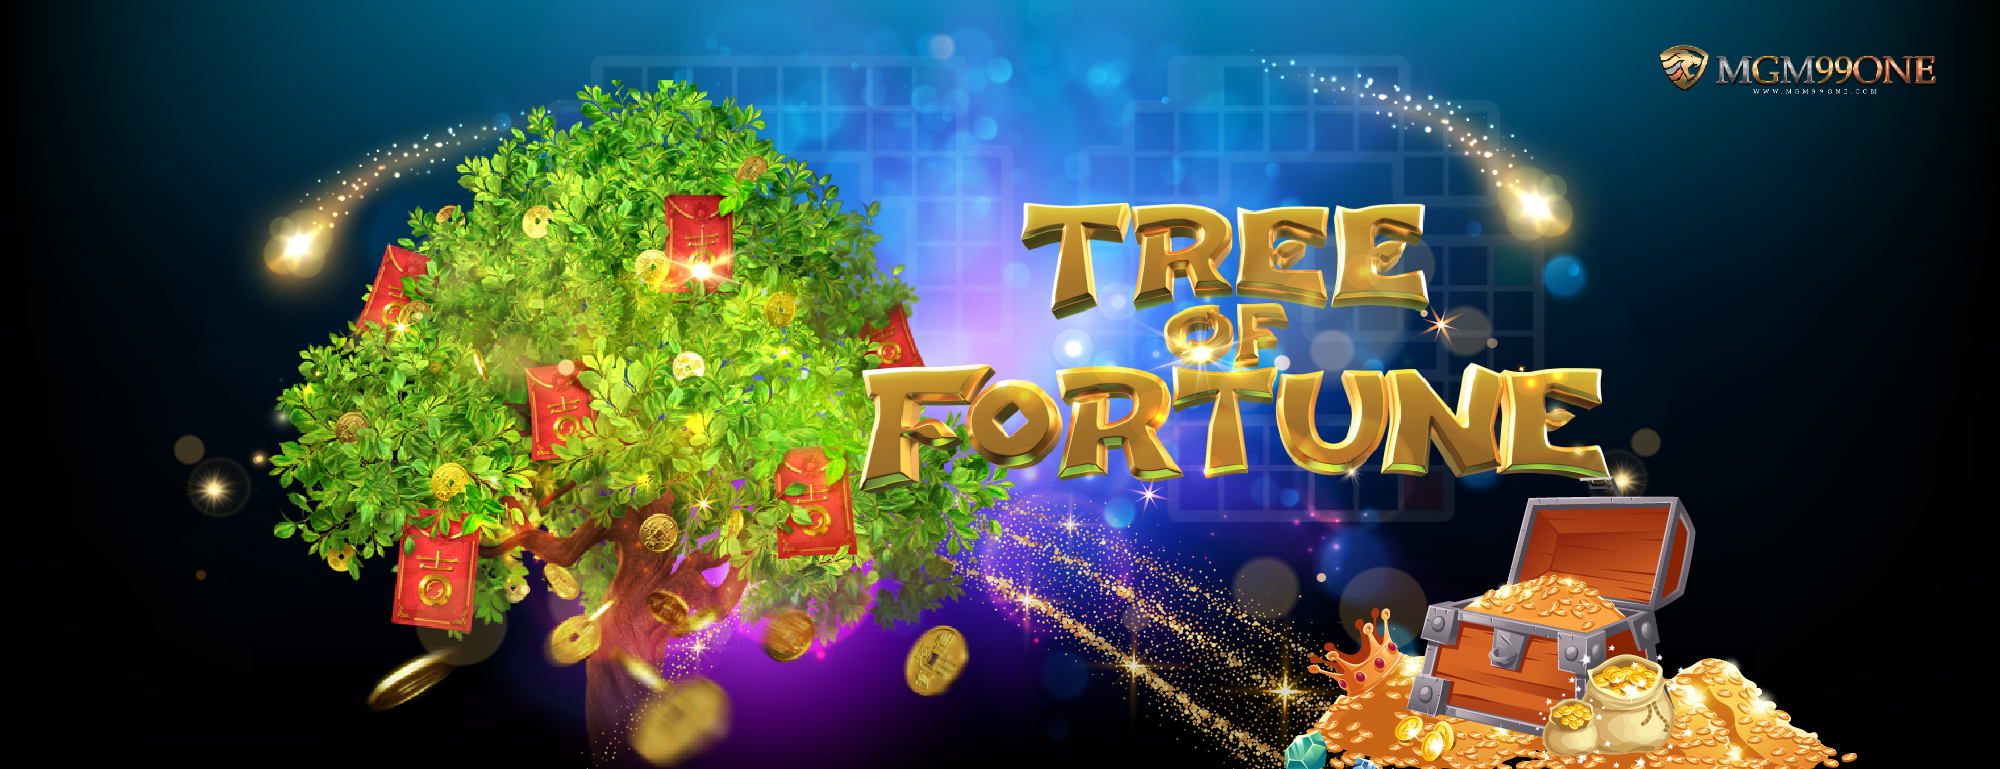 1Tree-of-fortune-2-01